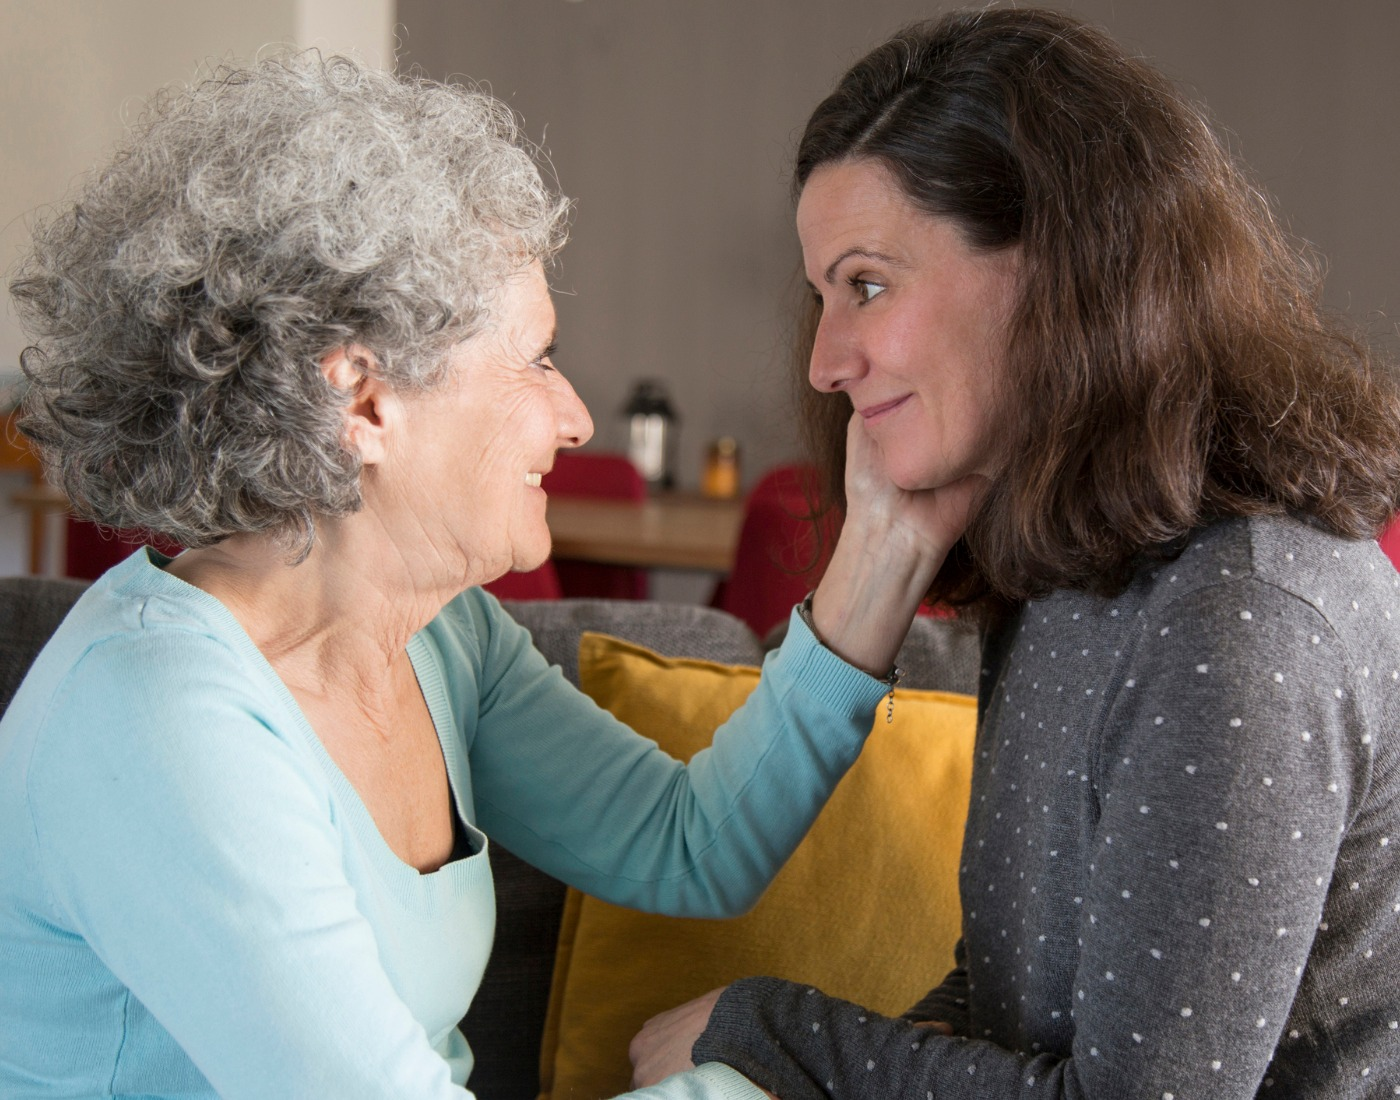 Reminder for caregivers: care for yourself, too